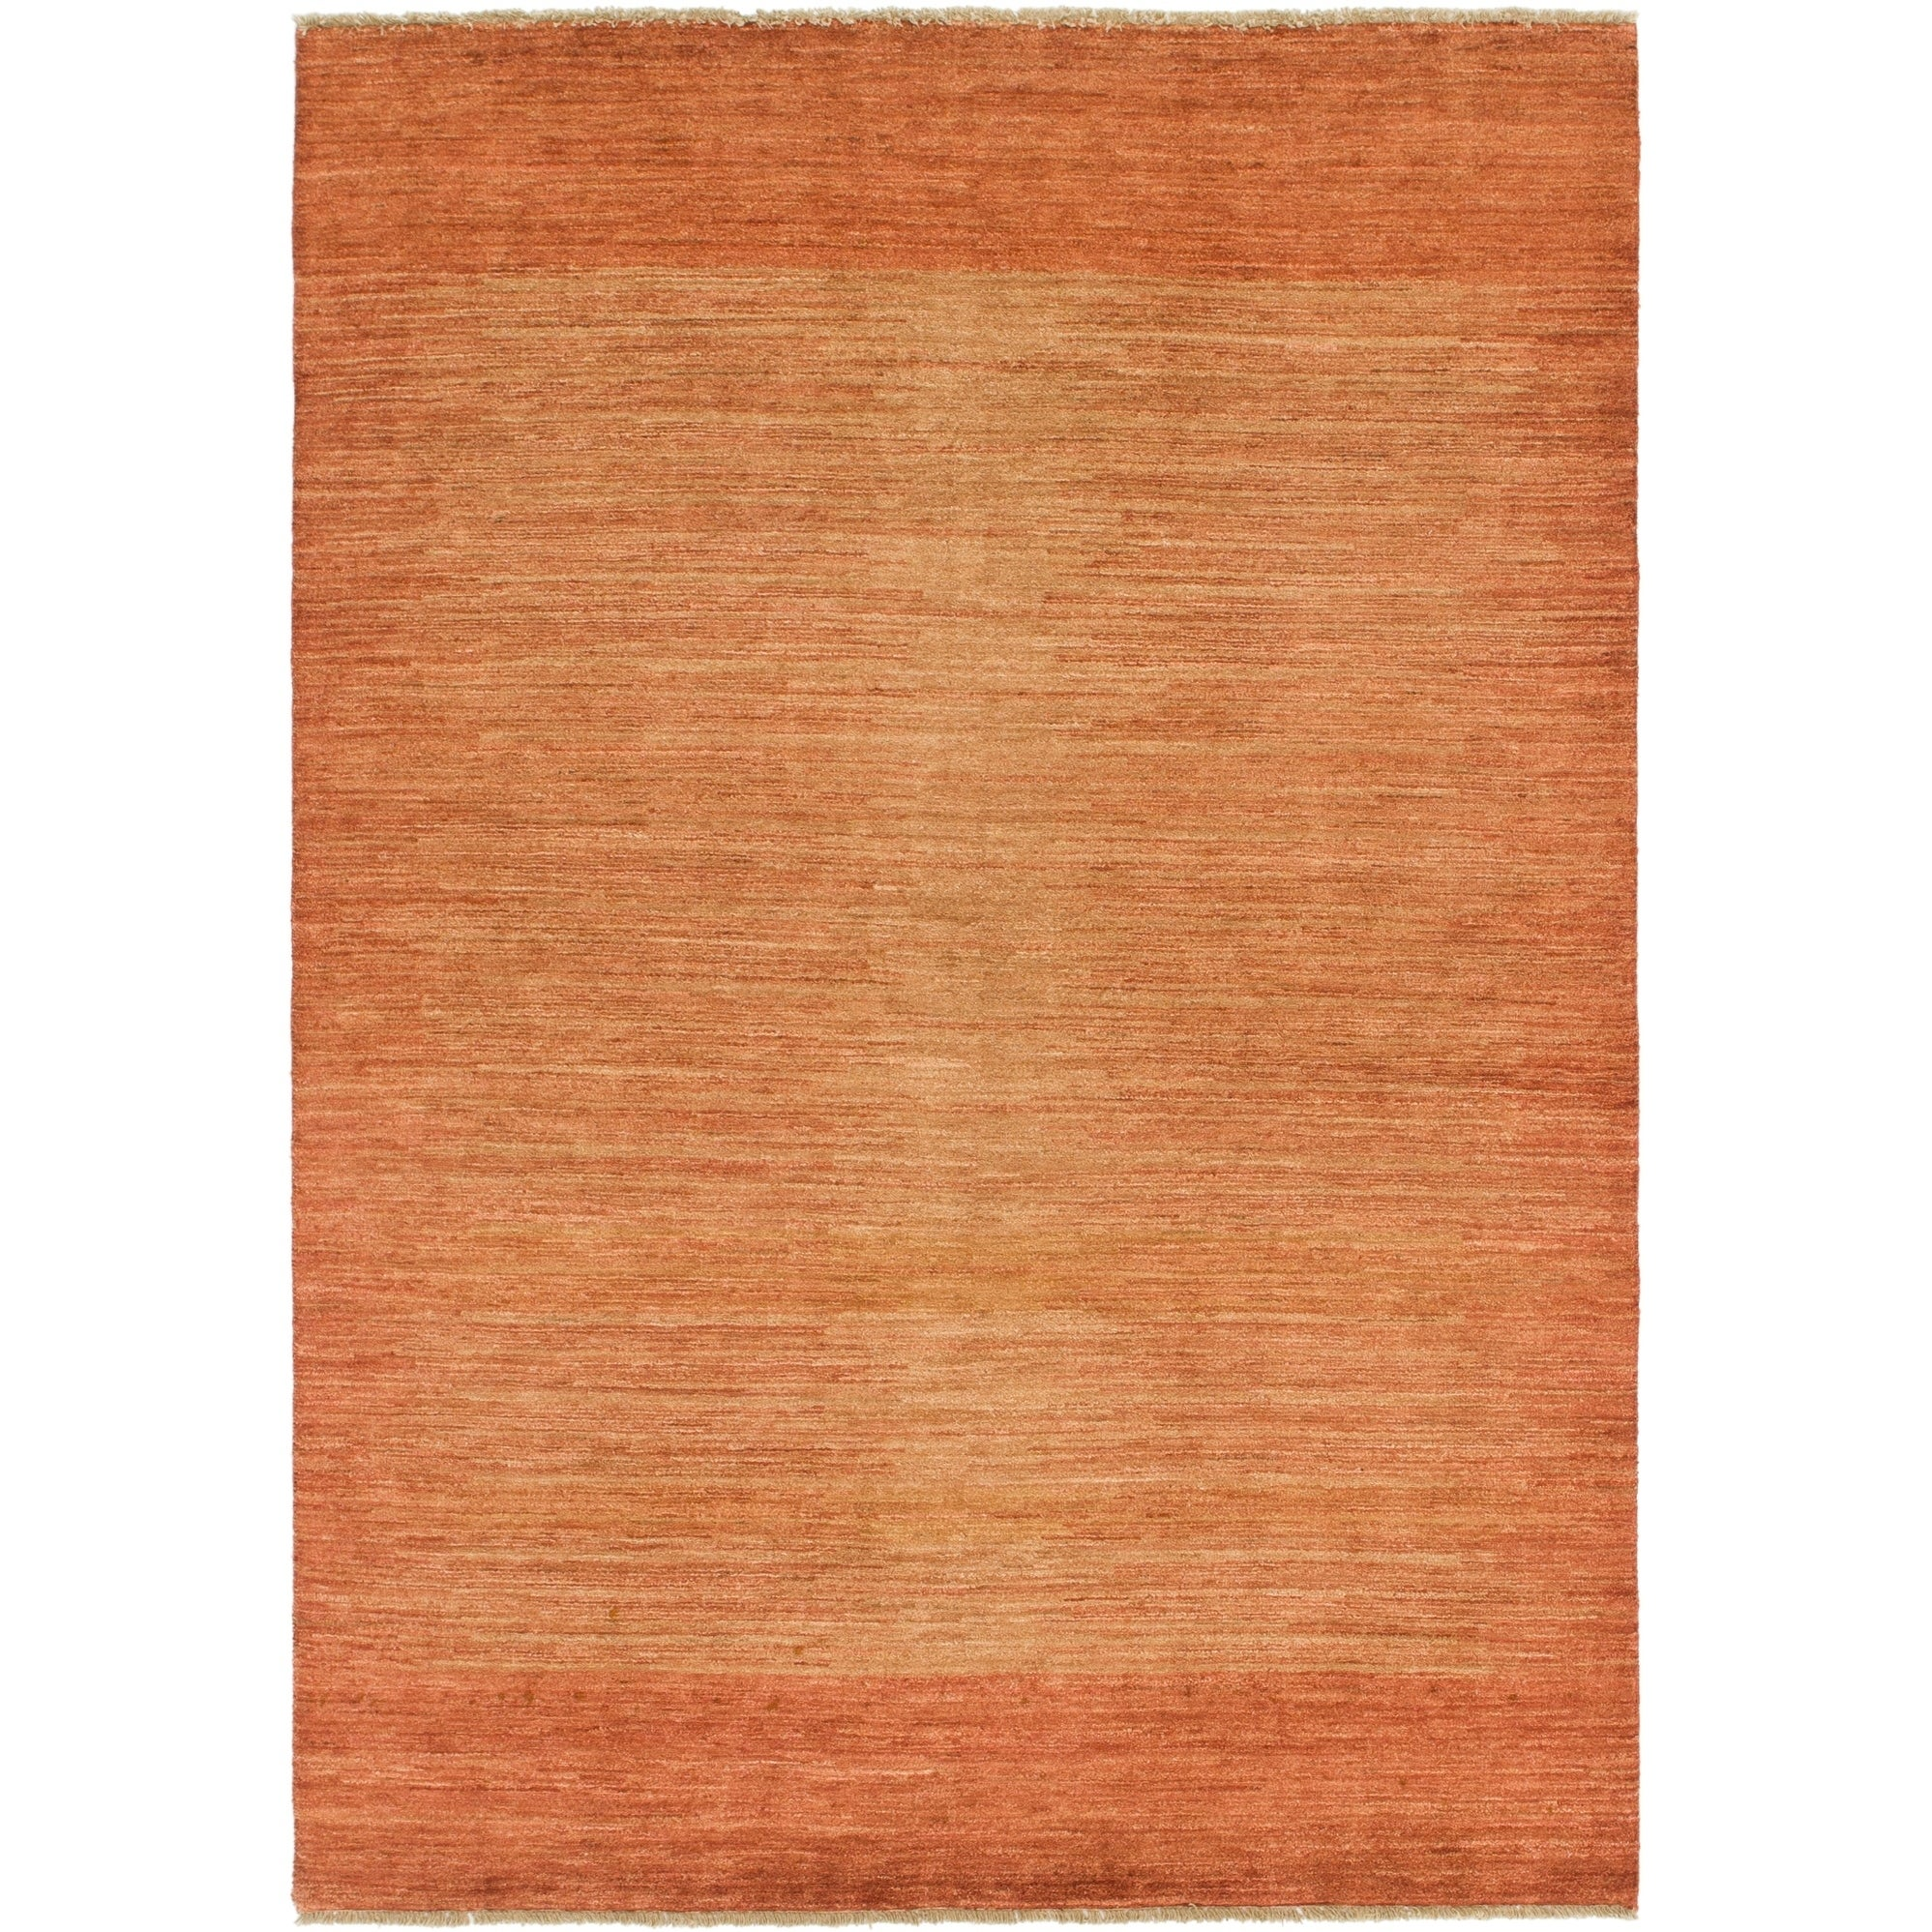 Hand Knotted Kashkuli Gabbeh Wool Area Rug - 5 8 x 8 2 (Rust Red - 5 8 x 8 2)